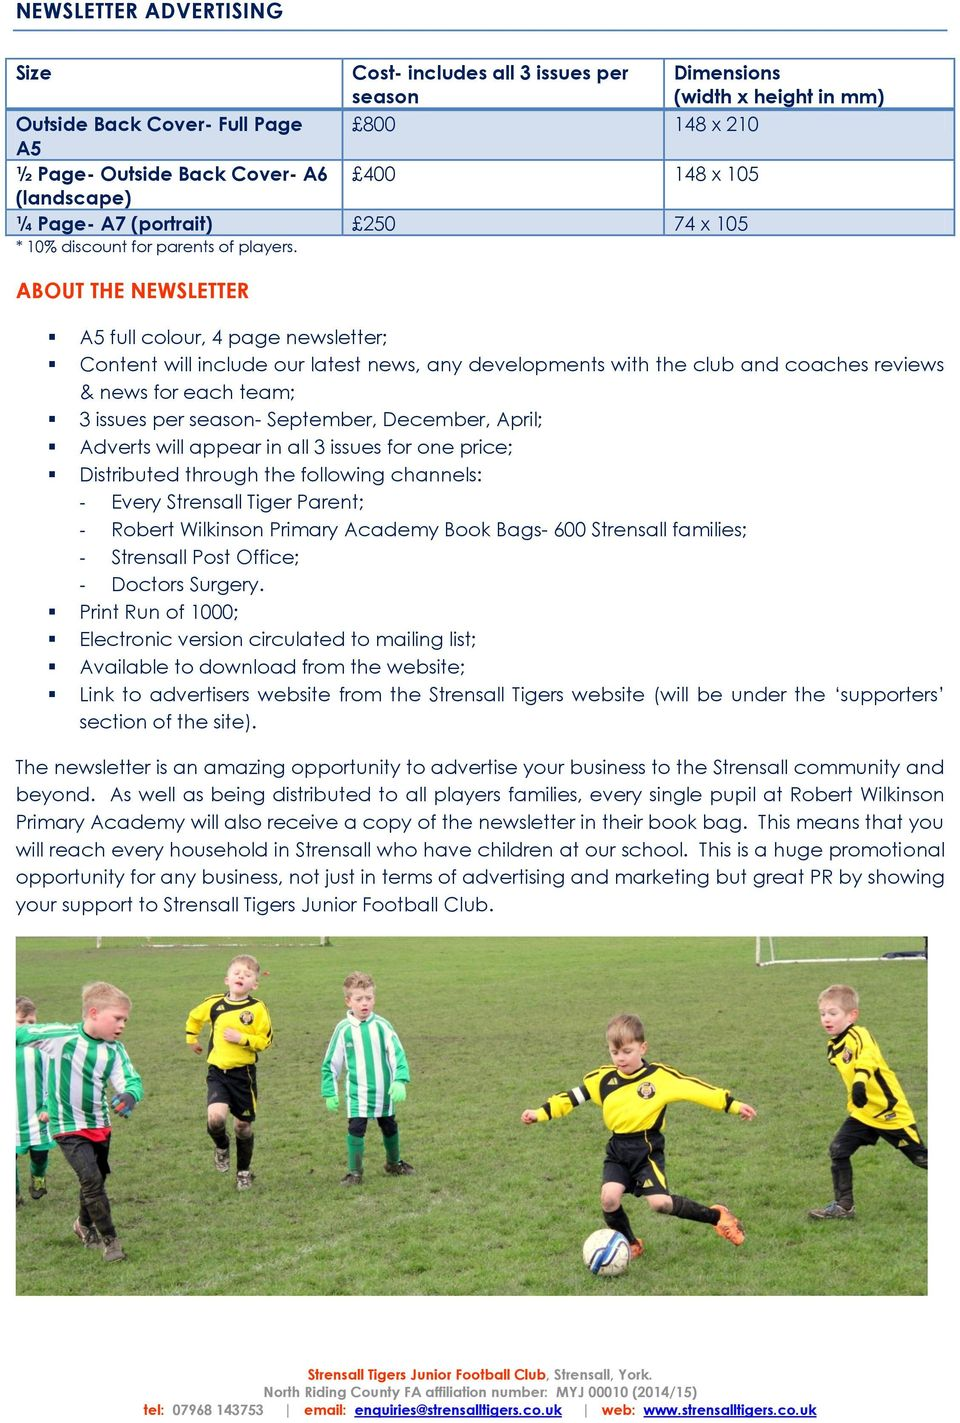 ABOUT THE NEWSLETTER Dimensions (width x height in mm) A5 full colour, 4 page newsletter; Content will include our latest news, any developments with the club and coaches reviews & news for each